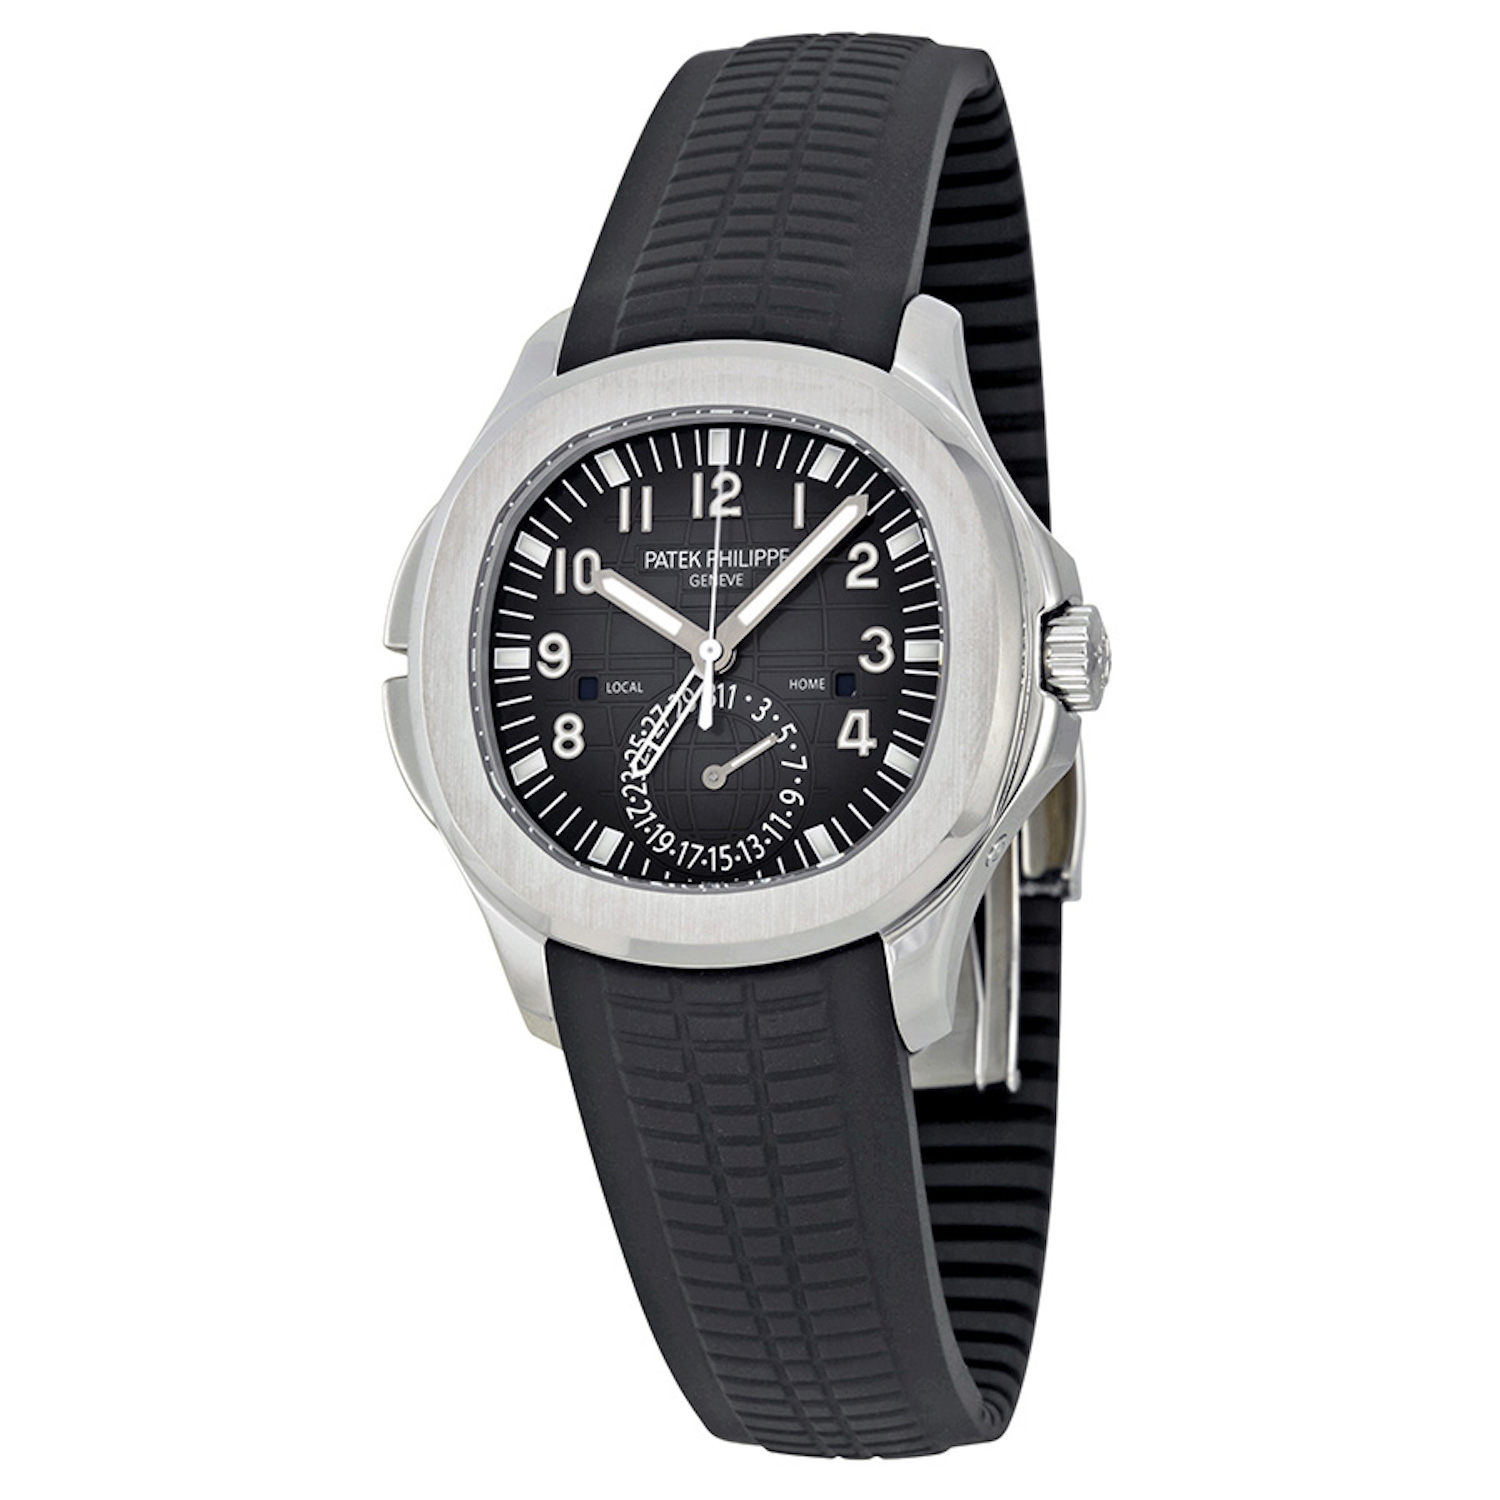 Patek Philippe Men's Aquanaut Stainless Steel Travel Time 5164A-001